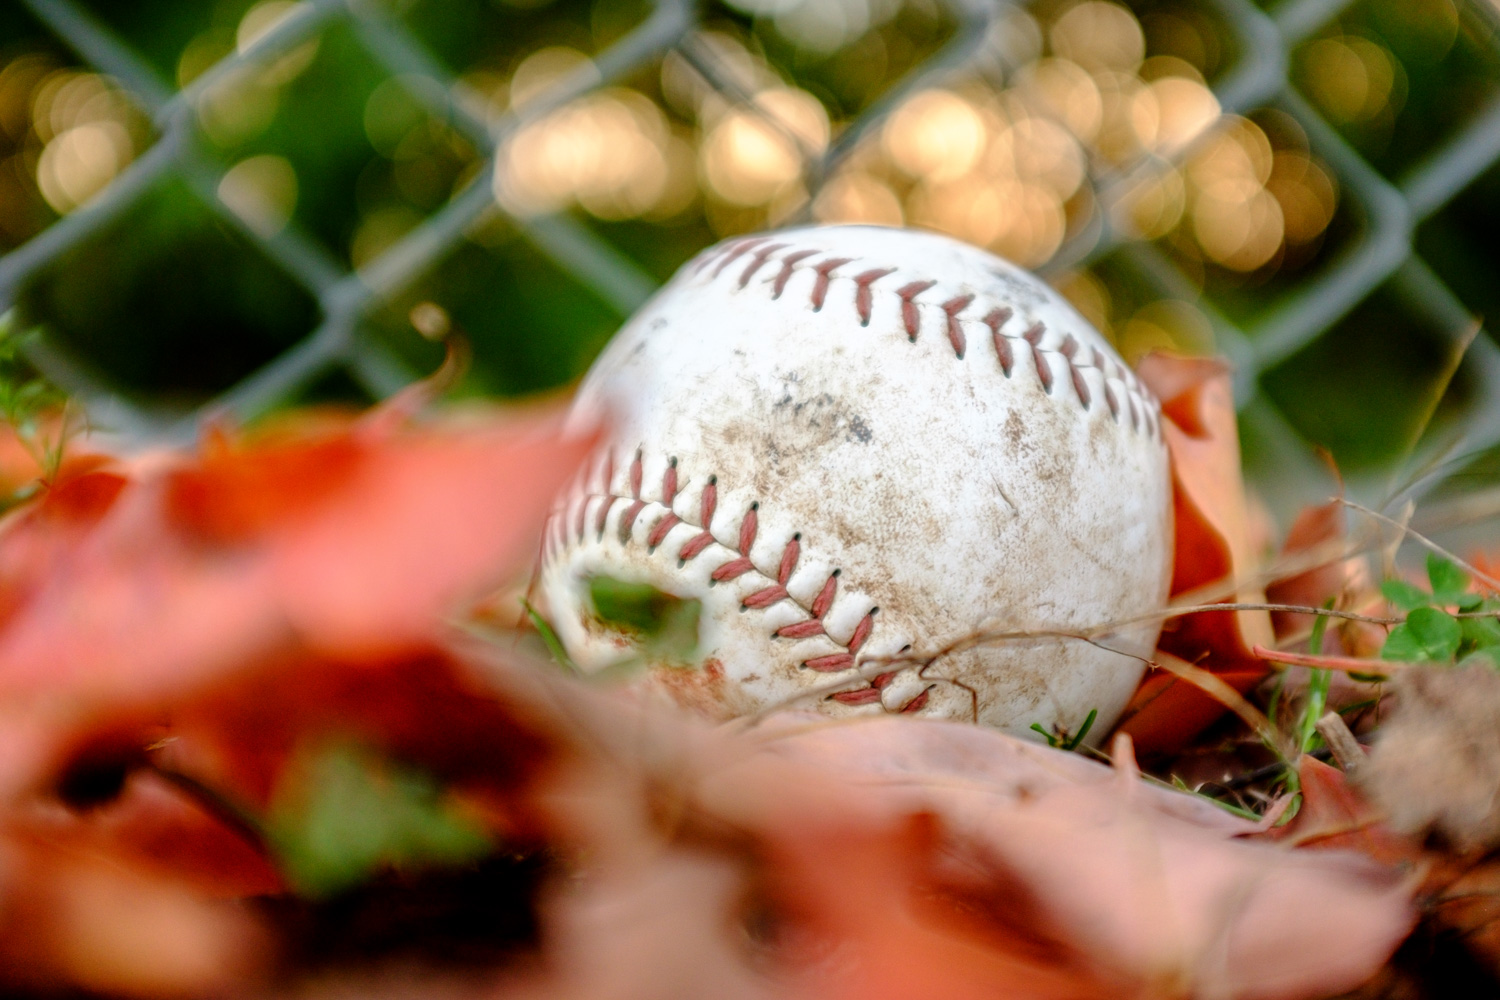 Image: I played baseball as a kid and feel nostalgic about it every autumn. One year I took a beat u...